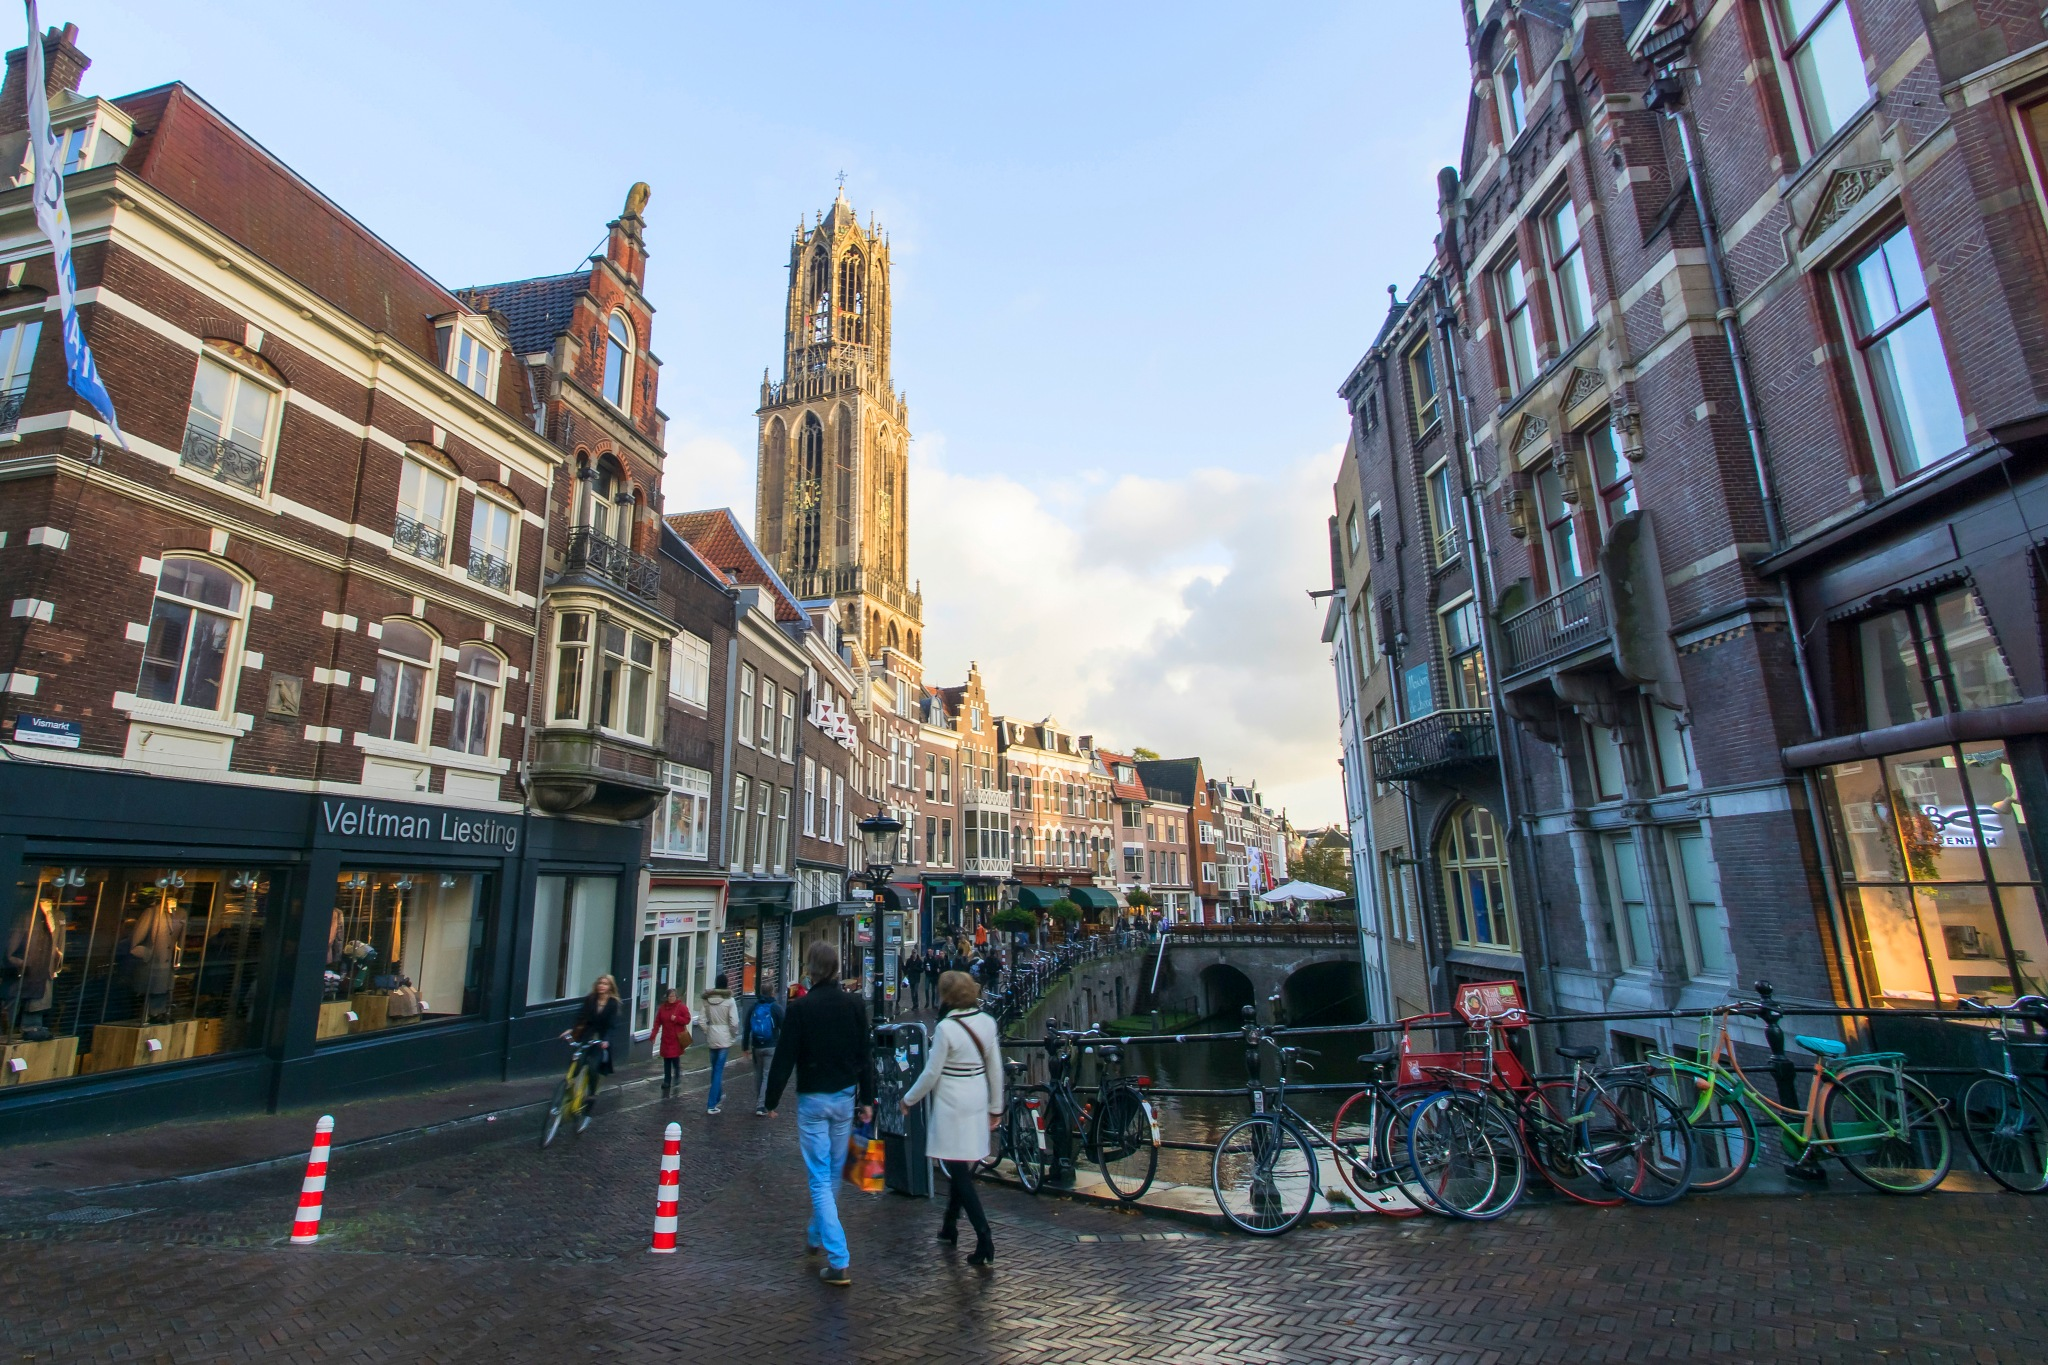 The Grand Old Lady of Utrecht by Rob van der Griend